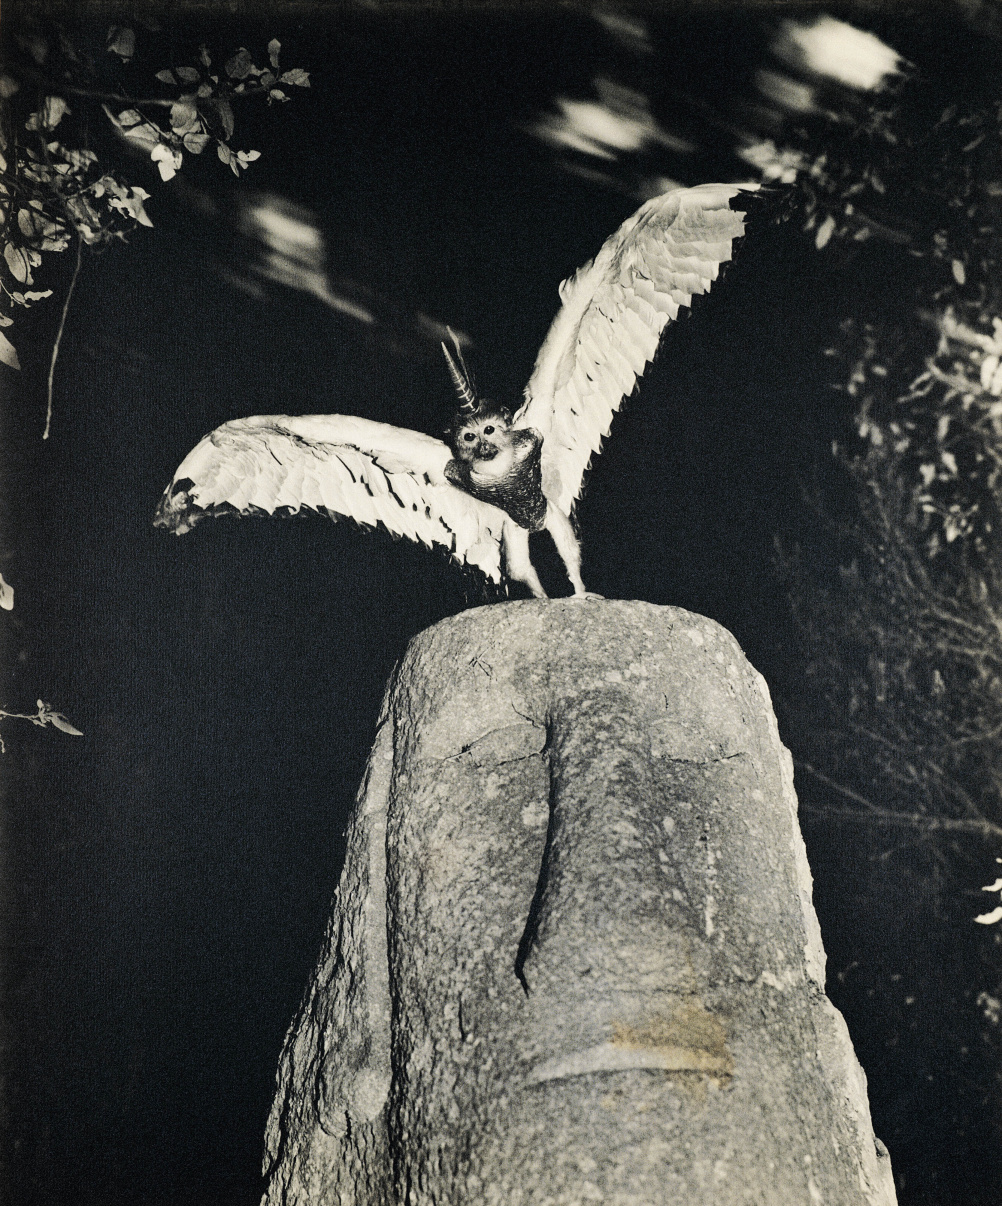 Cercophitecus Icarocornu from the Fauna series by Joan Fontcuberta and Pere Formiguera, 1985 © Joan Fontcuberta and Pere Formiguera